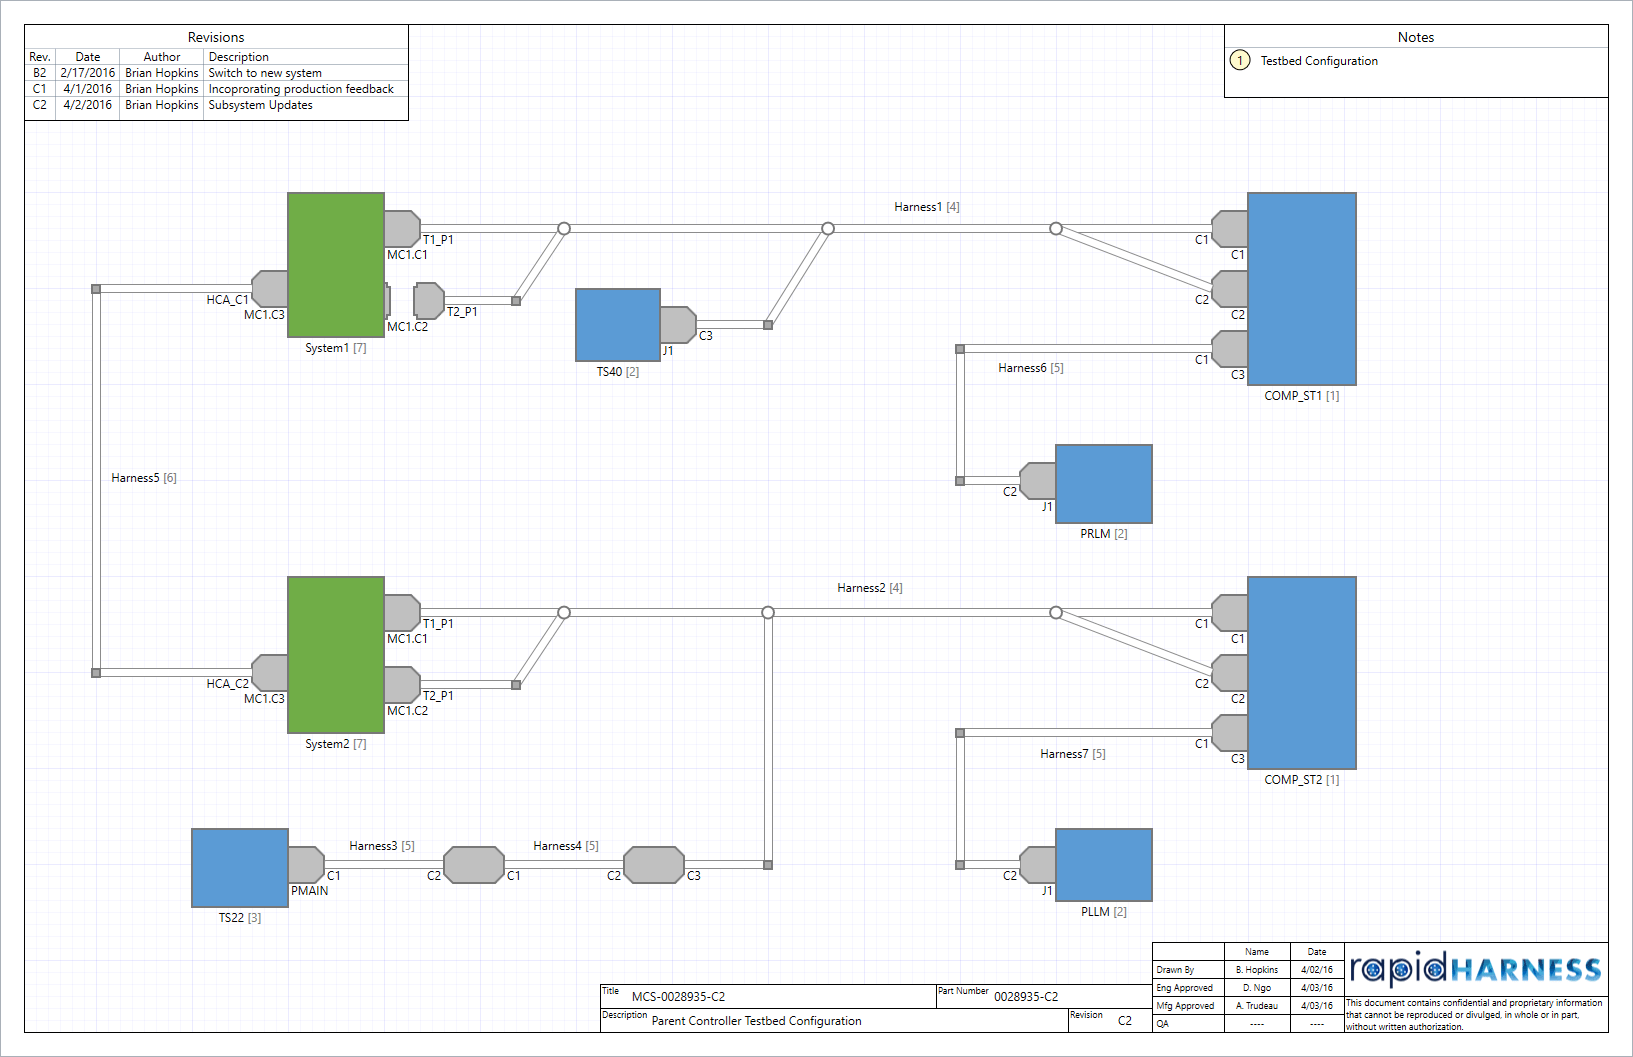 wiring harness software system [ 1633 x 1057 Pixel ]